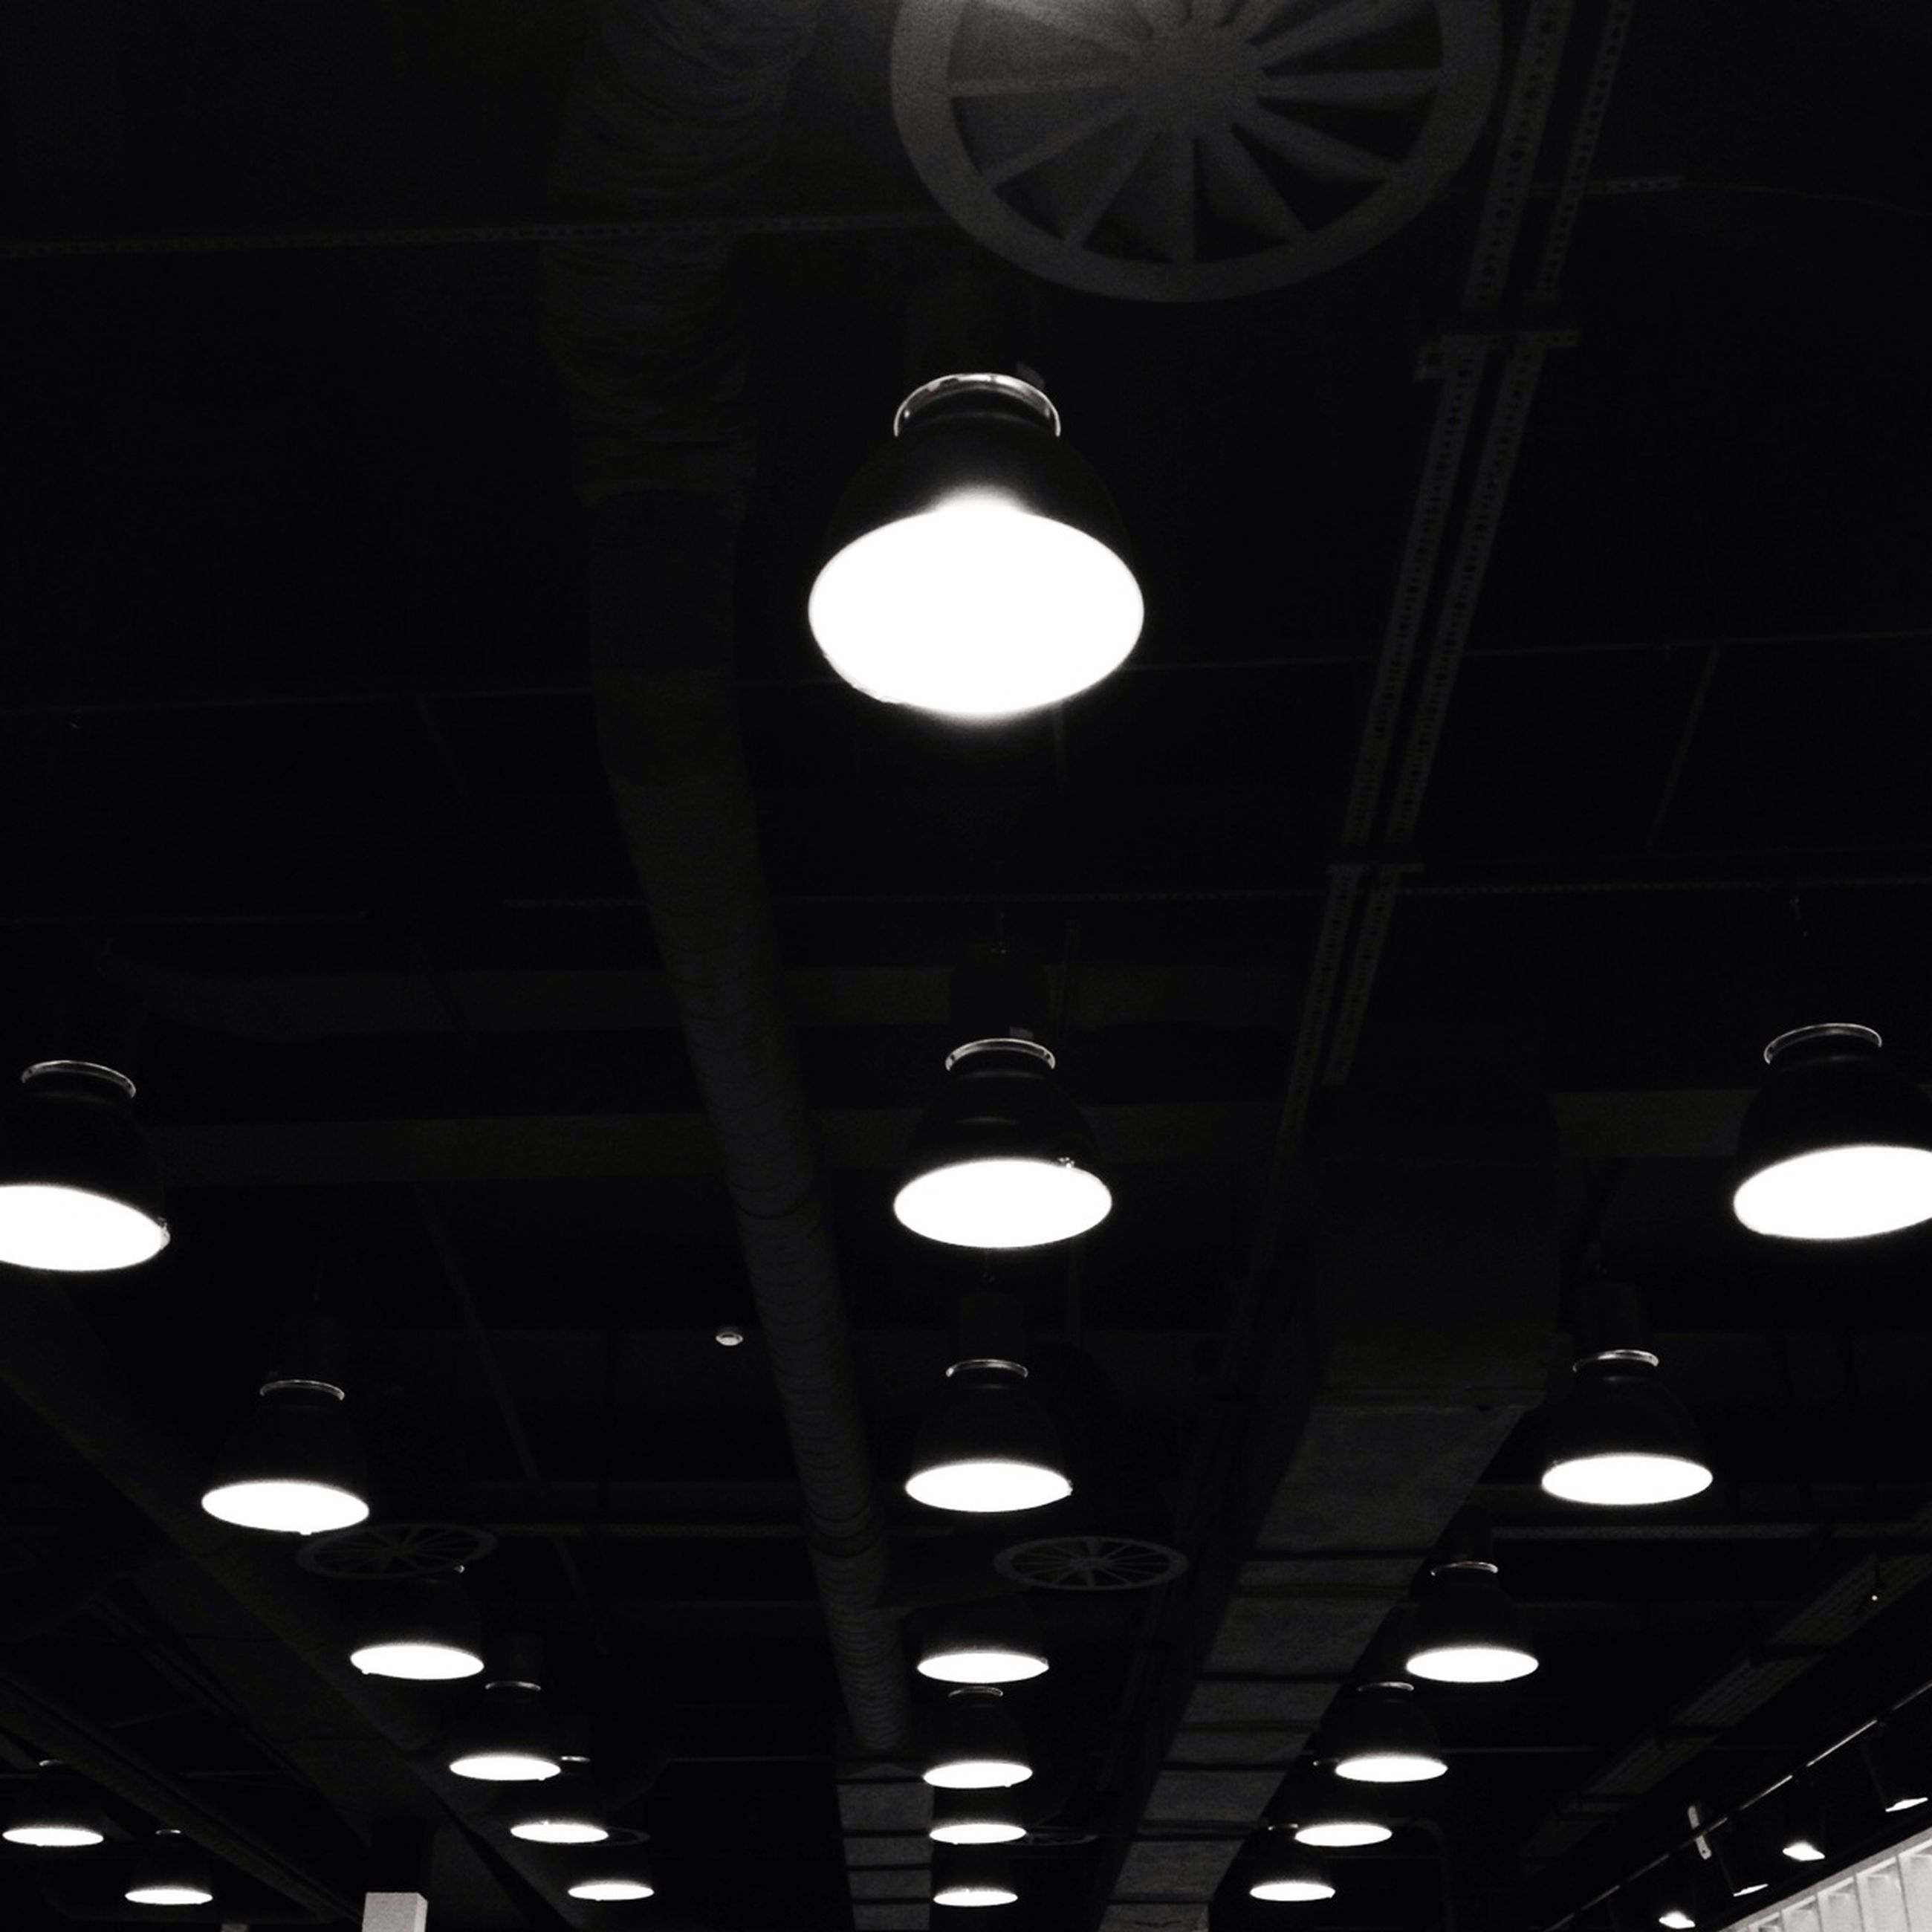 illuminated, indoors, ceiling, lighting equipment, low angle view, electric light, architecture, electricity, built structure, hanging, electric lamp, night, in a row, pendant light, light - natural phenomenon, light bulb, lamp, light fixture, modern, technology